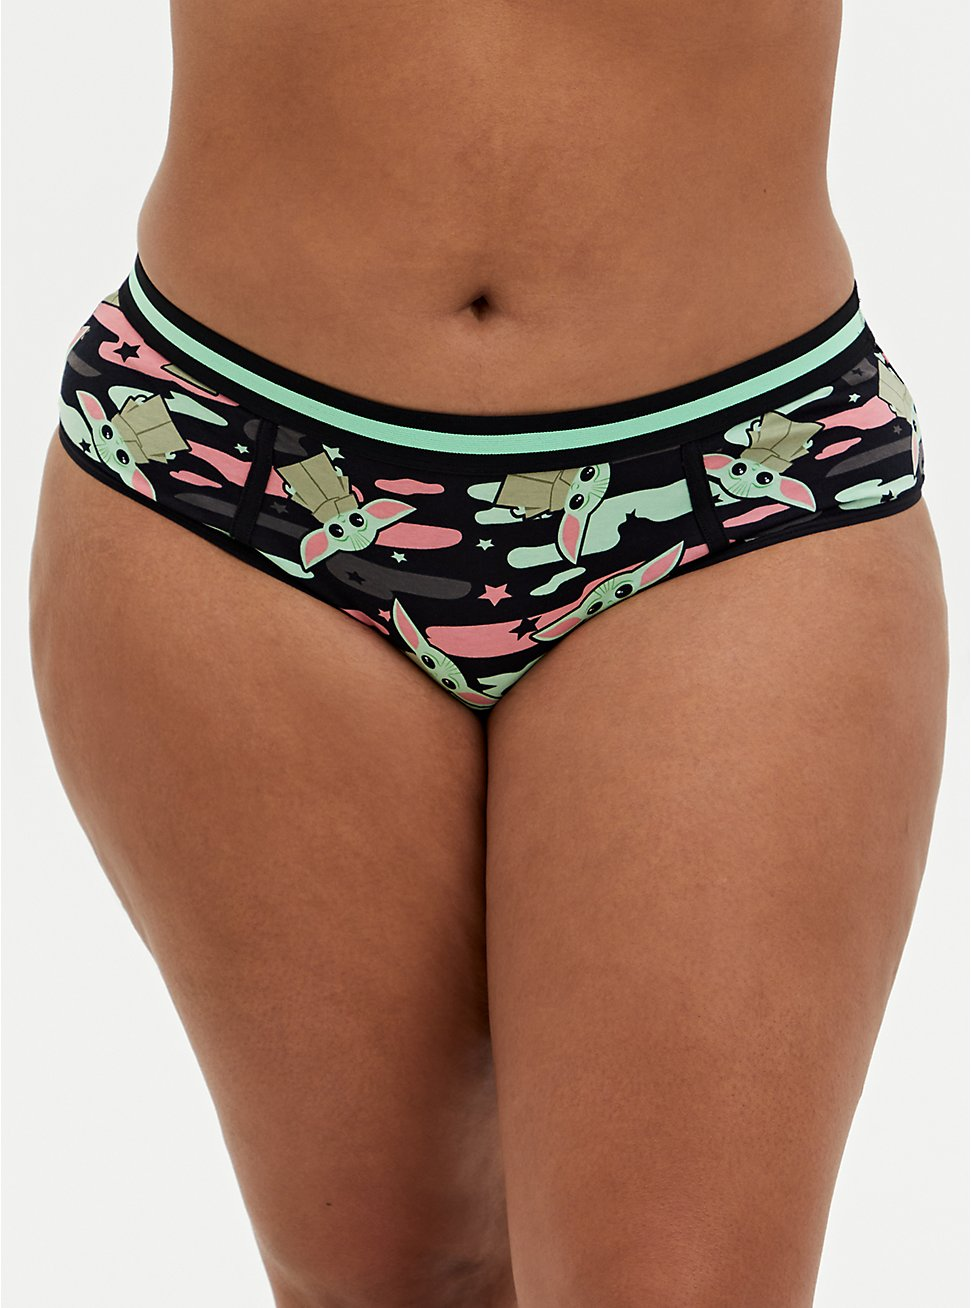 Star Wars The Mandalorian The Child Camo Cotton Hipster Panty, MULTI, hi-res